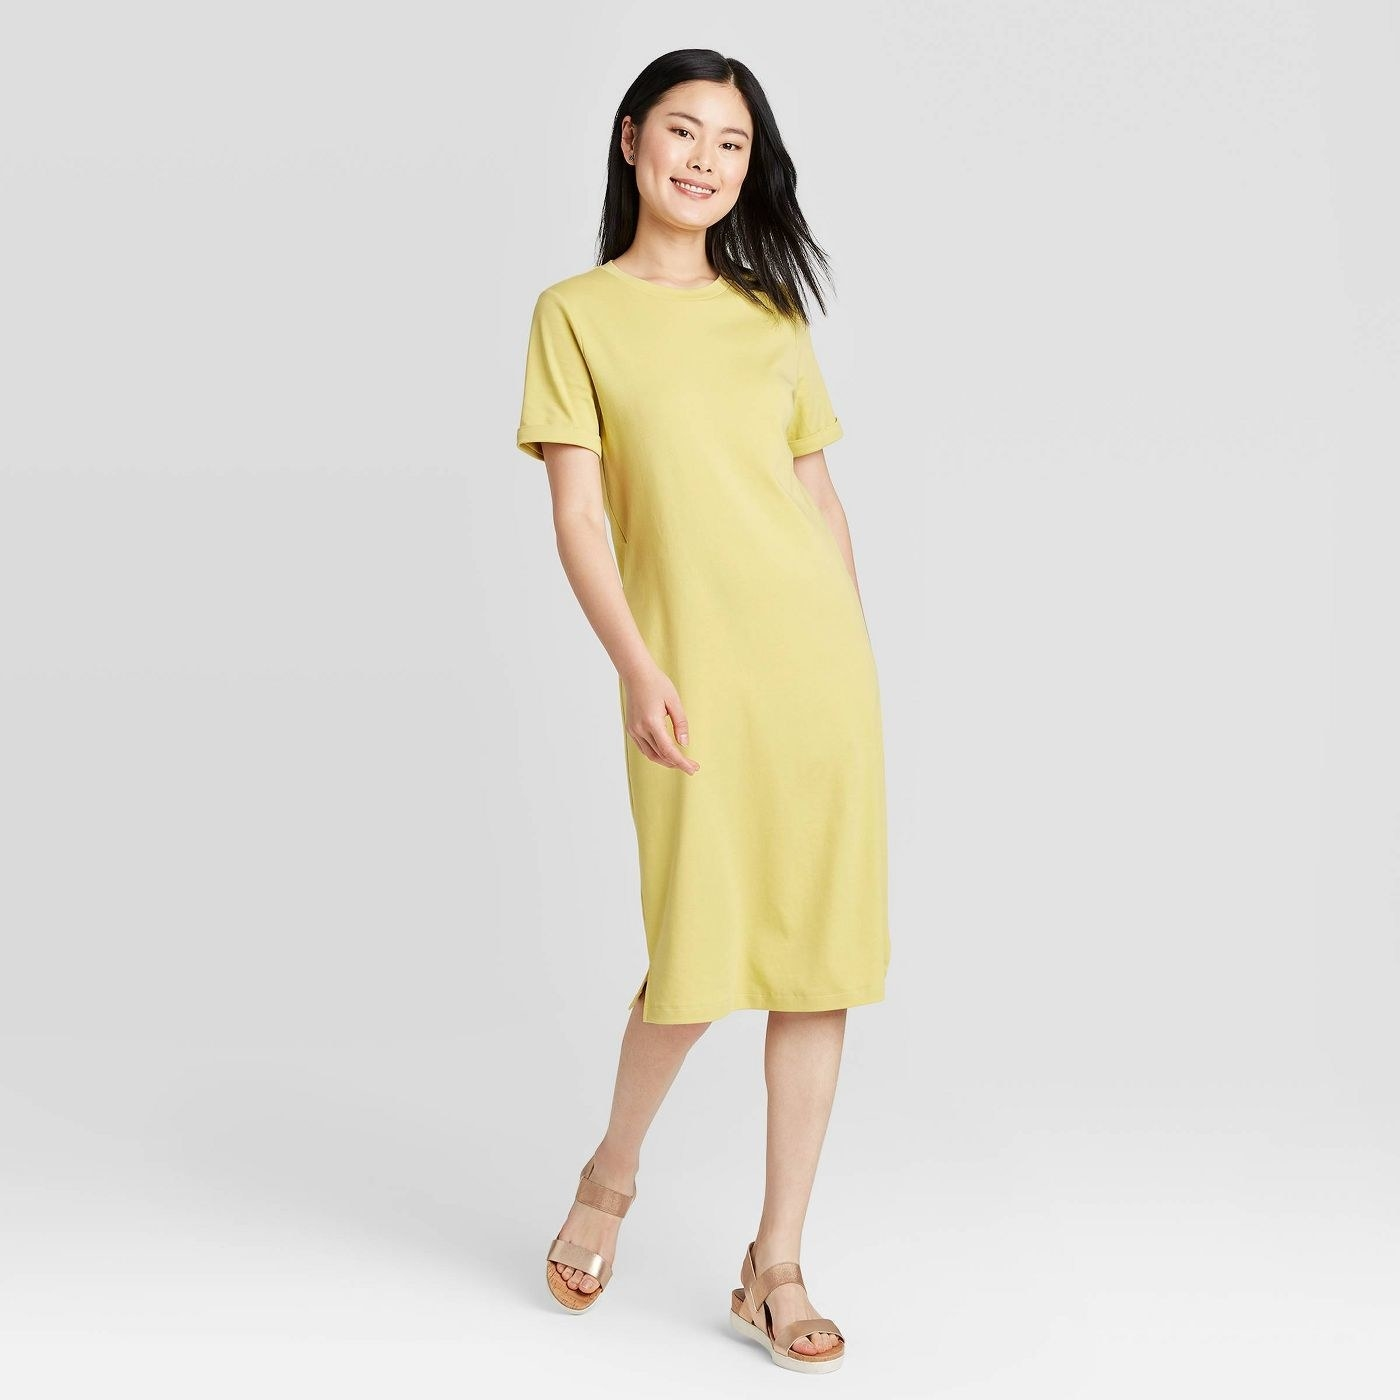 A yellow short-sleeved dress with a hem just below the knee